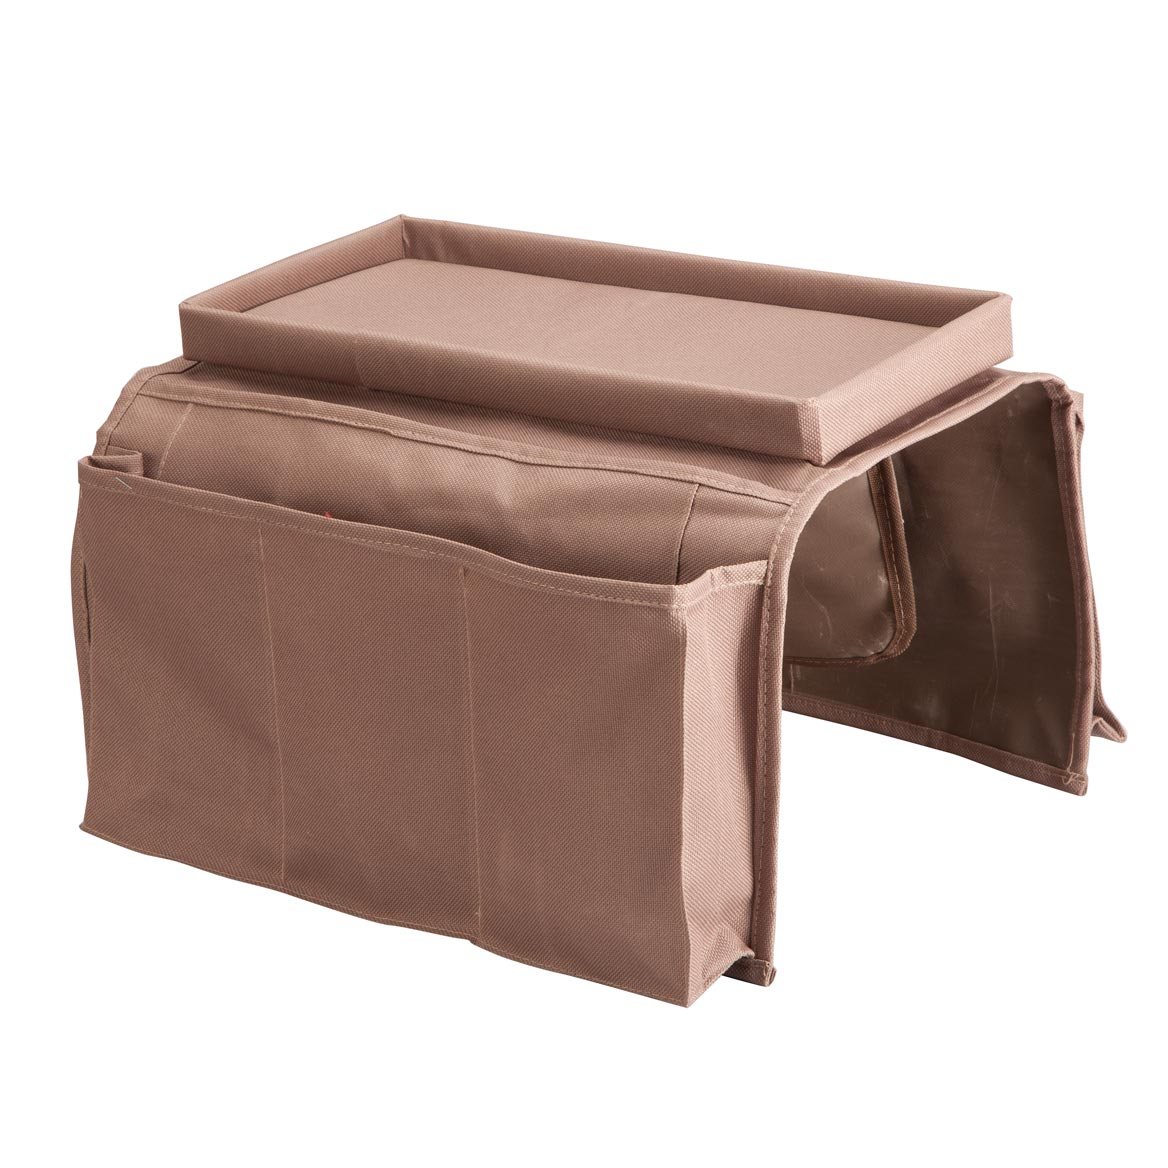 chair arm protectors with pockets floral dining chairs armchair caddy organizer tray home